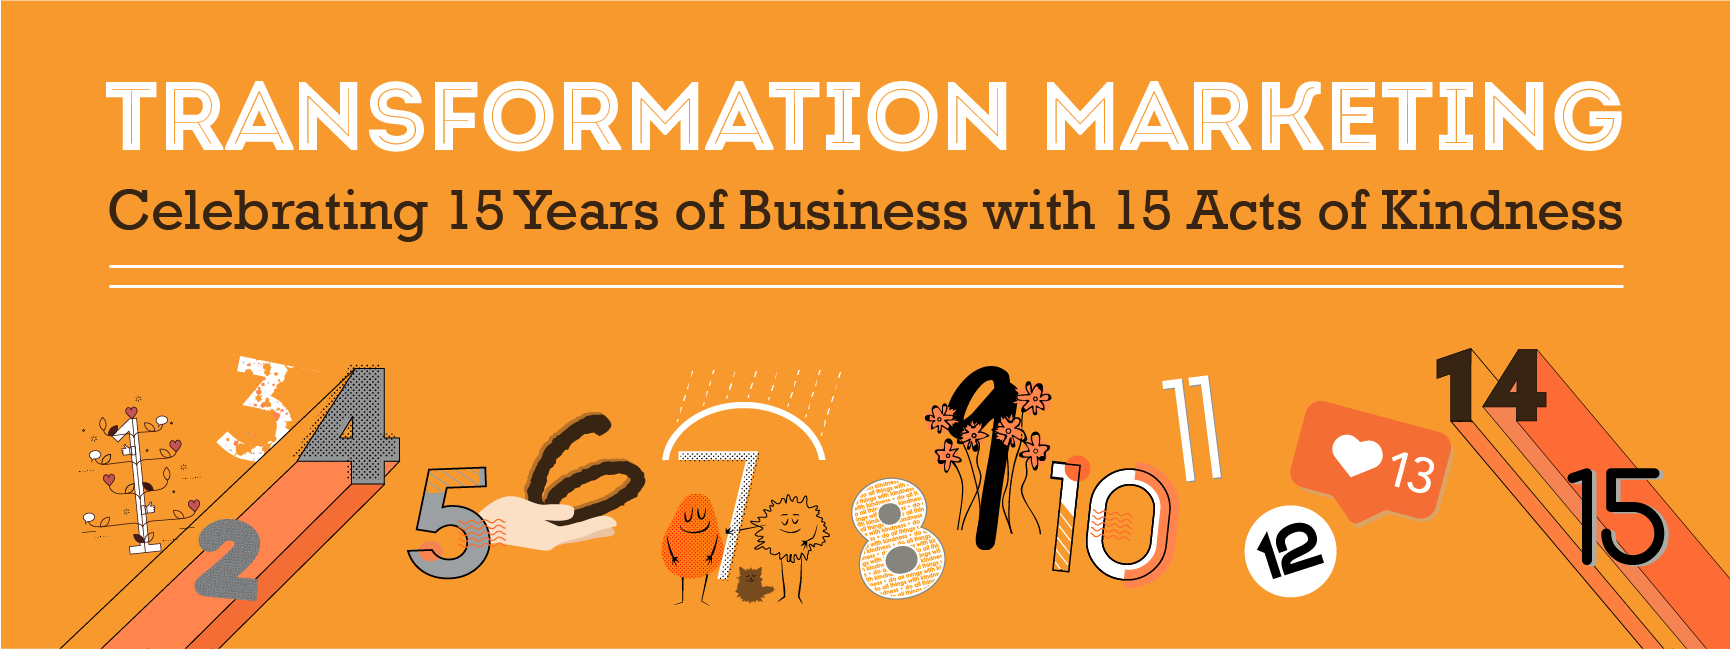 Banner image for Transformation Marketing's 15 Acts of Kindness for 15 Years of Business